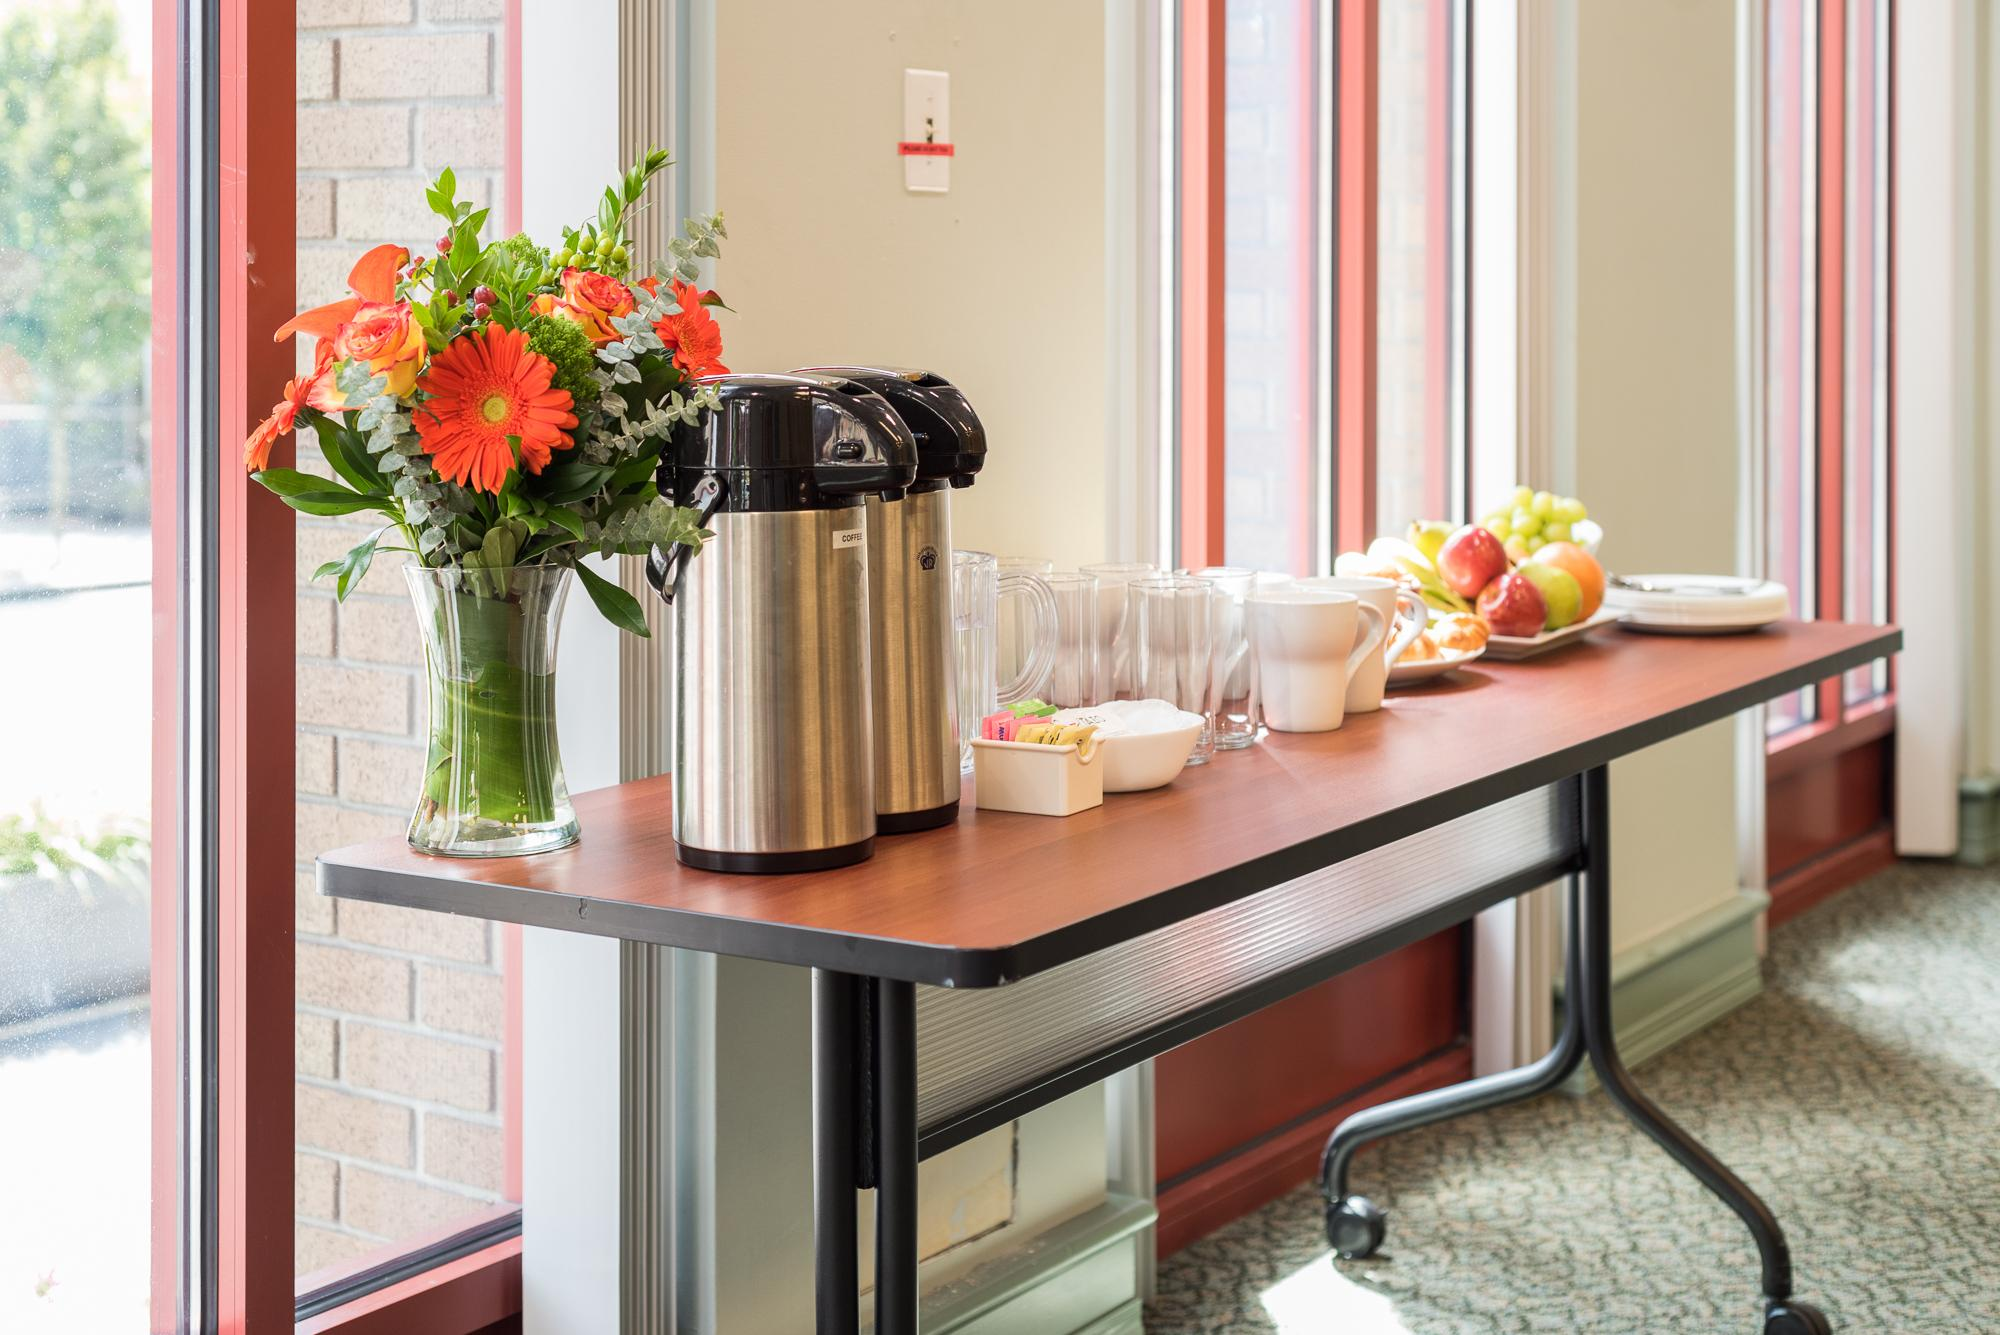 Tables and cutlery - YWCA Hotel Vancouver Meeting room rentals